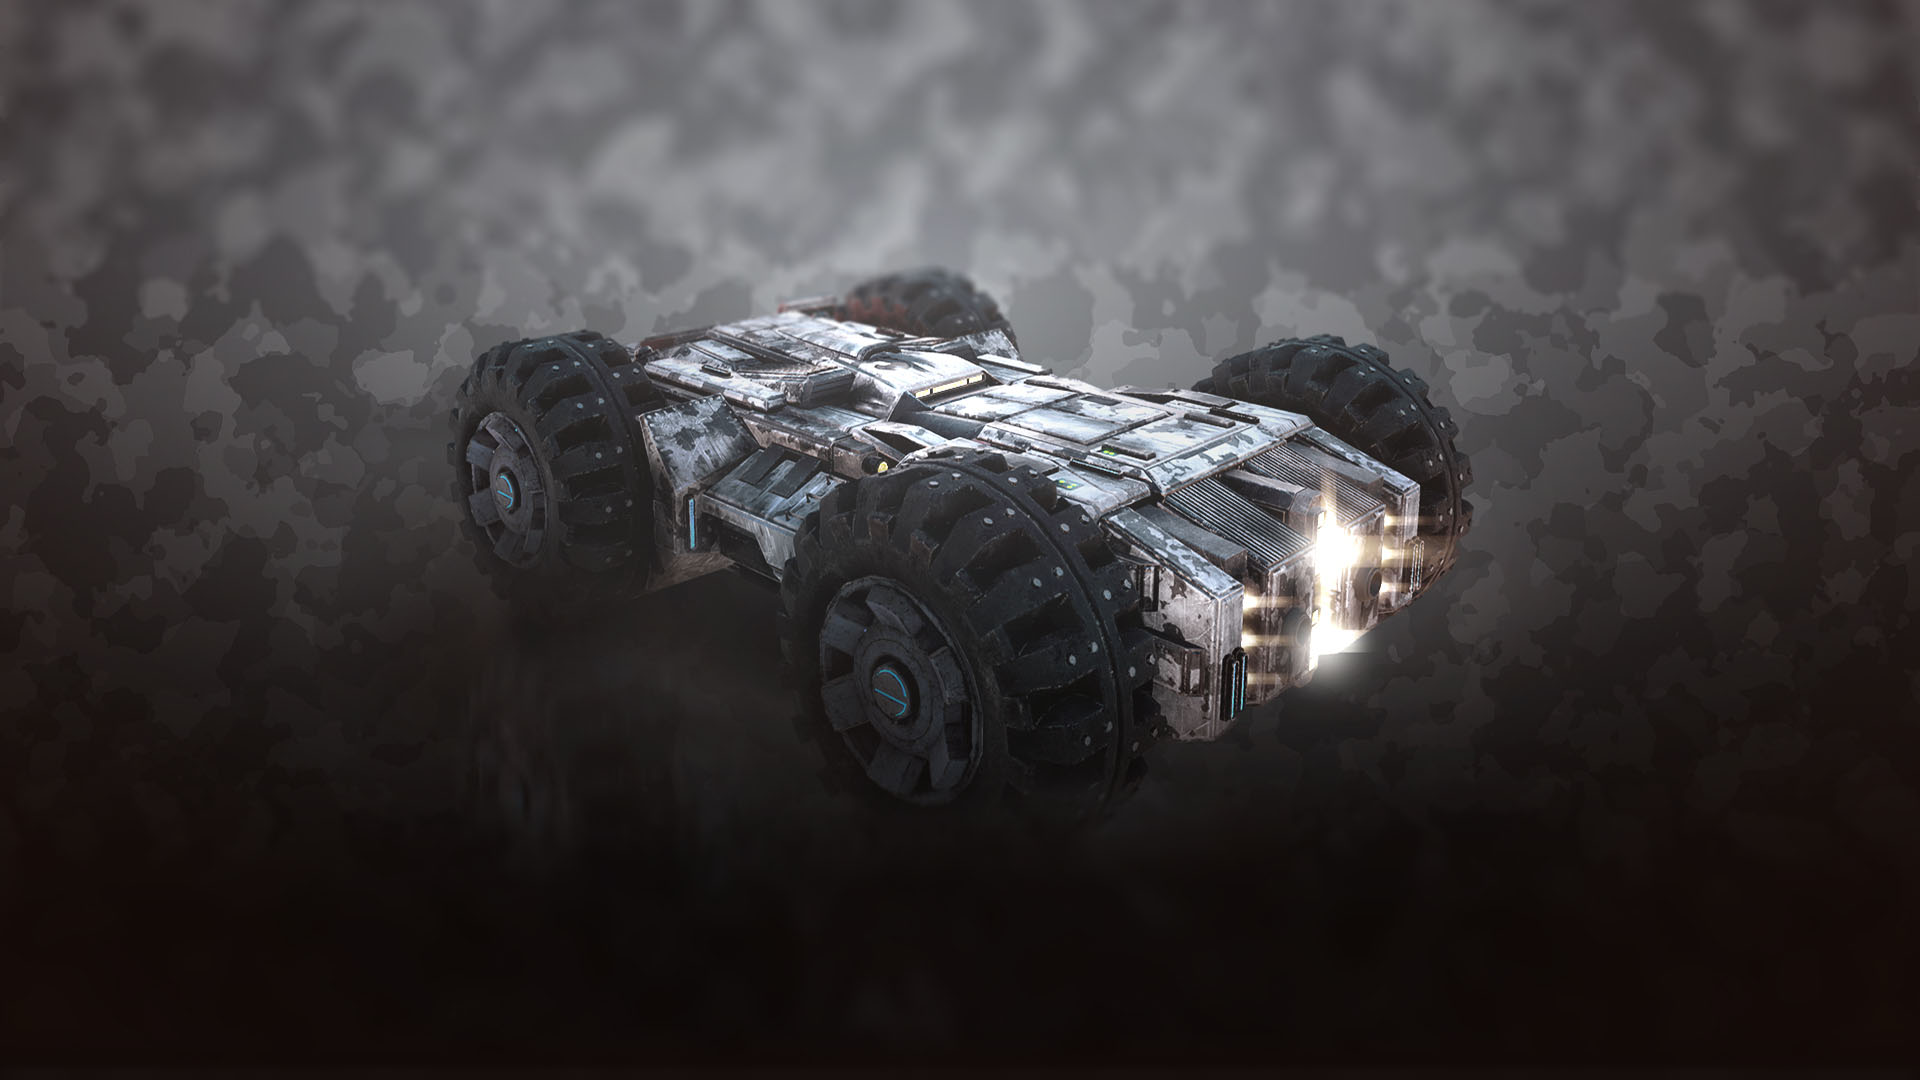 Dreadnought - A metal brick on wheels, built to smash through obstacles and blast its way through a battleground.